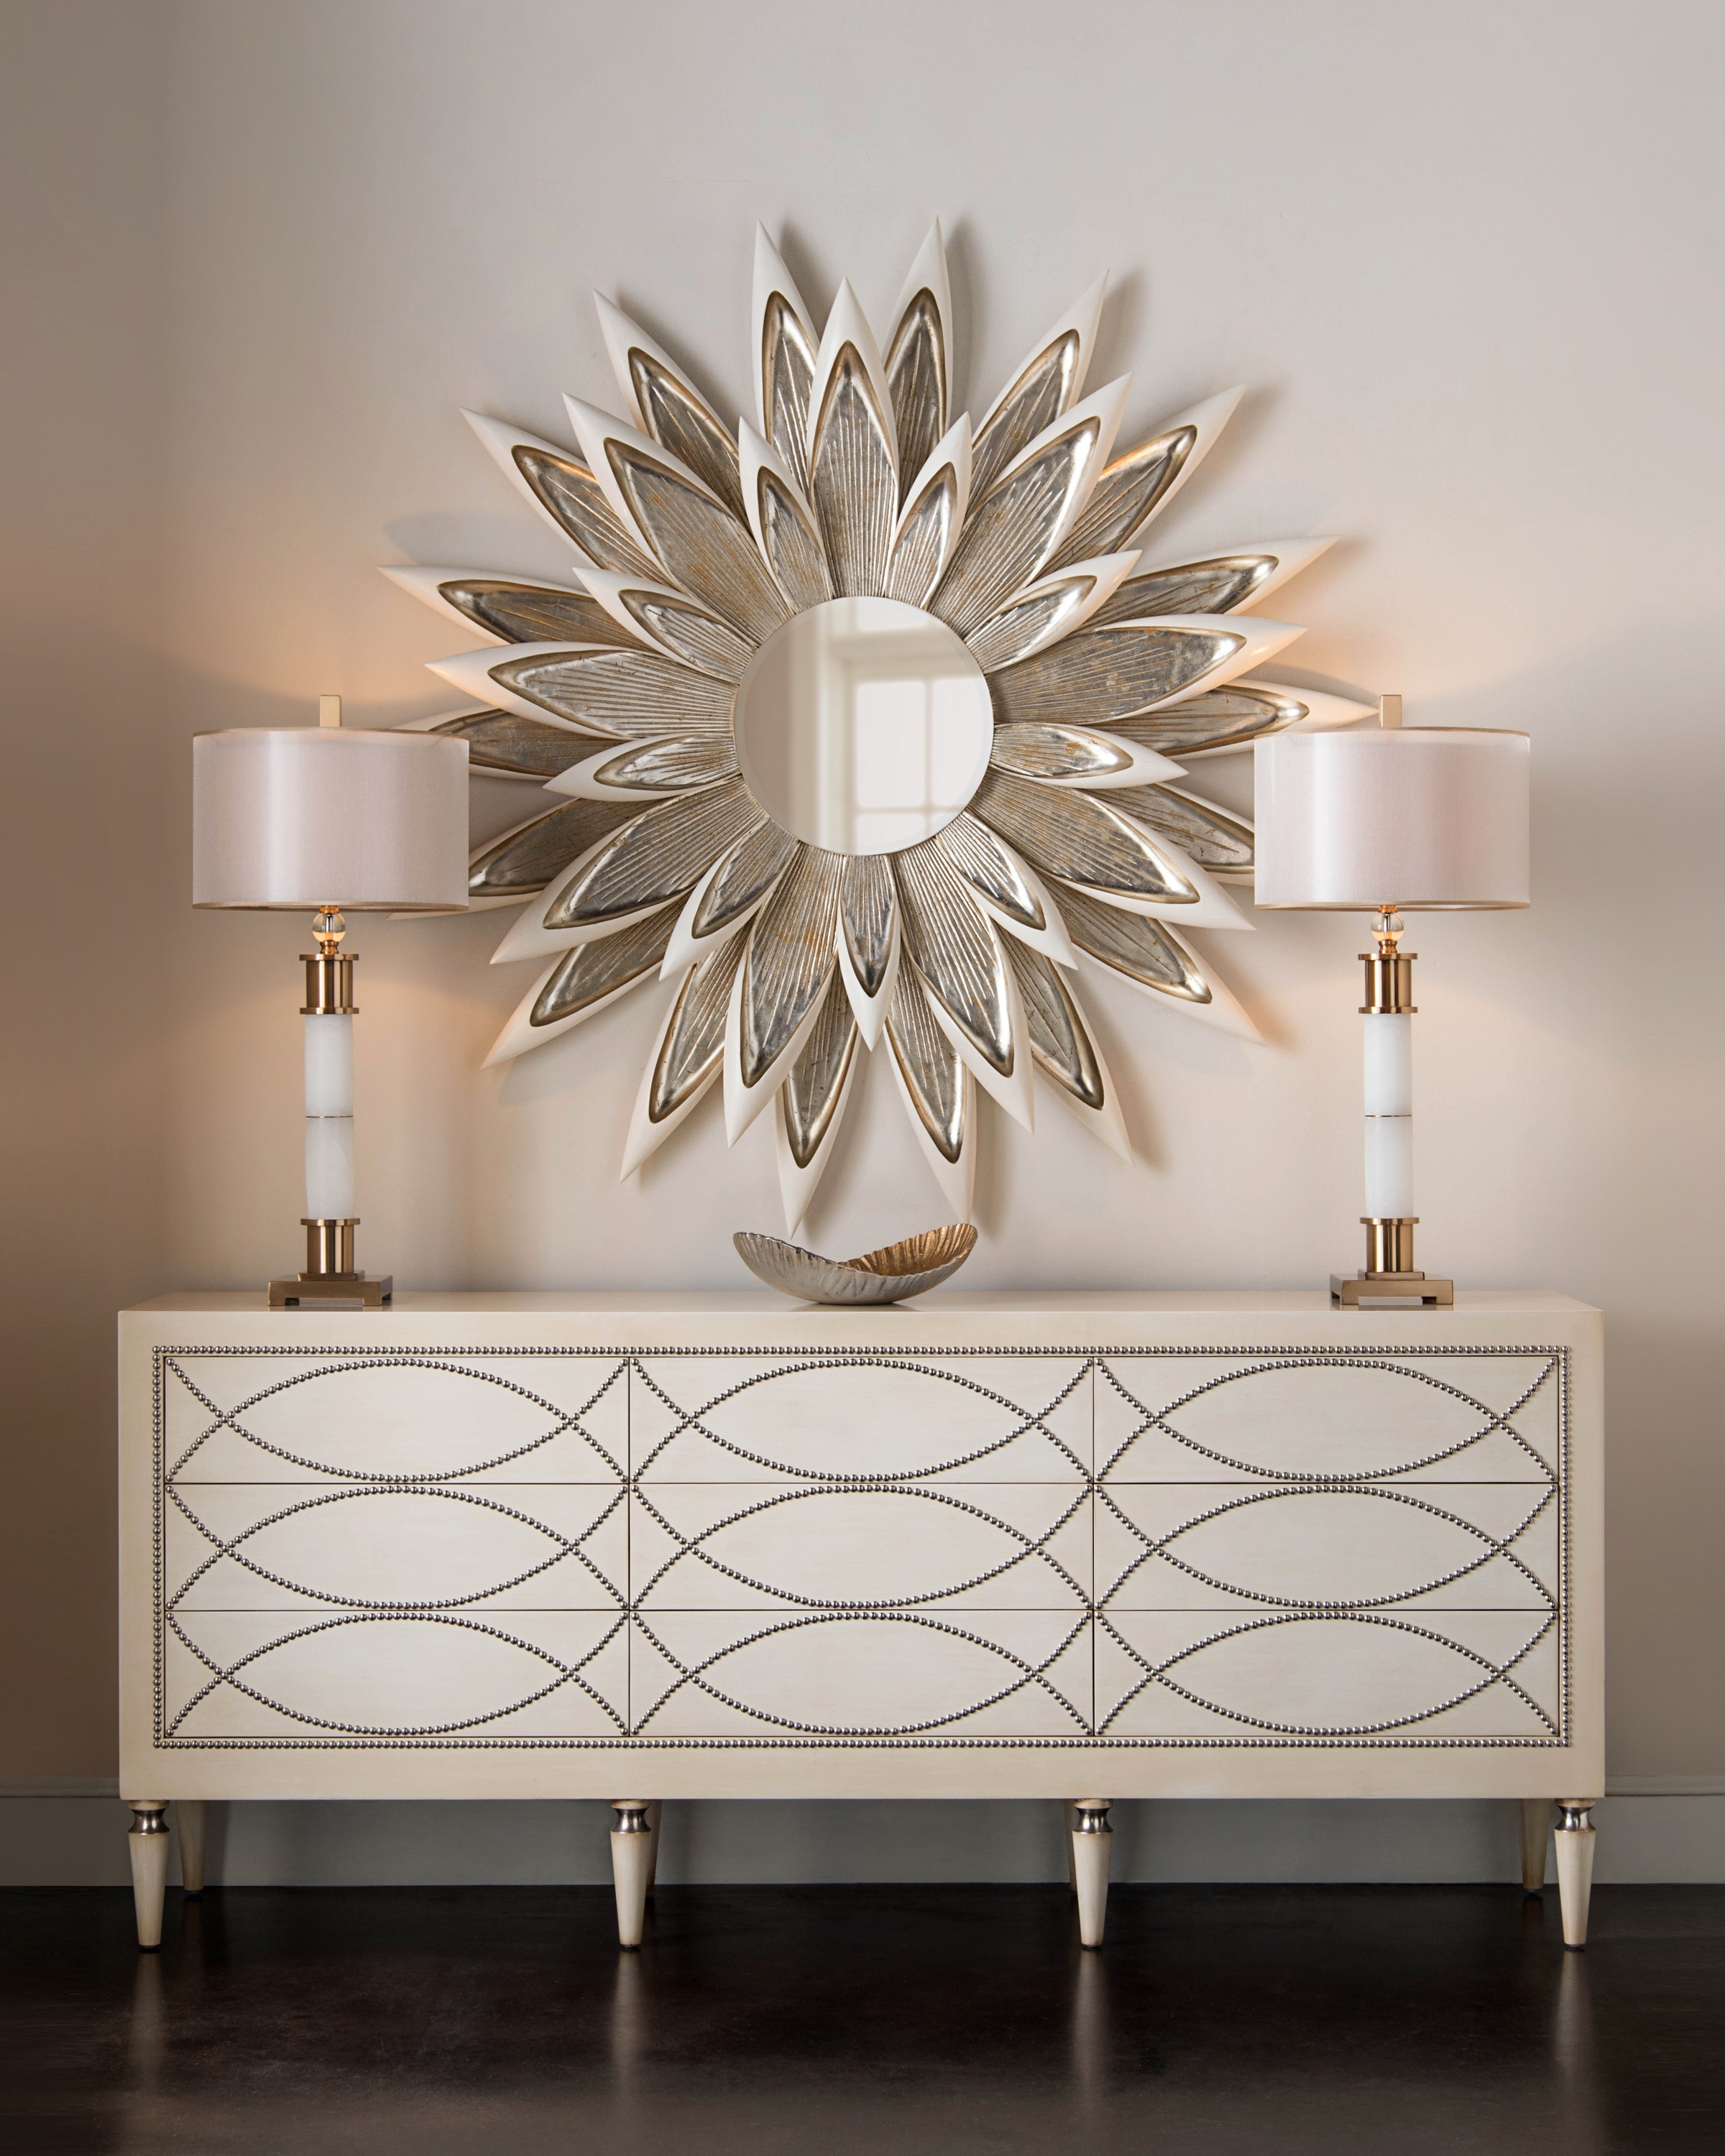 Decor: Sunburst Mirror Kirklands Wall Art Metal With Modern Chest With Regard To 2018 Kirklands Wall Art (View 6 of 15)